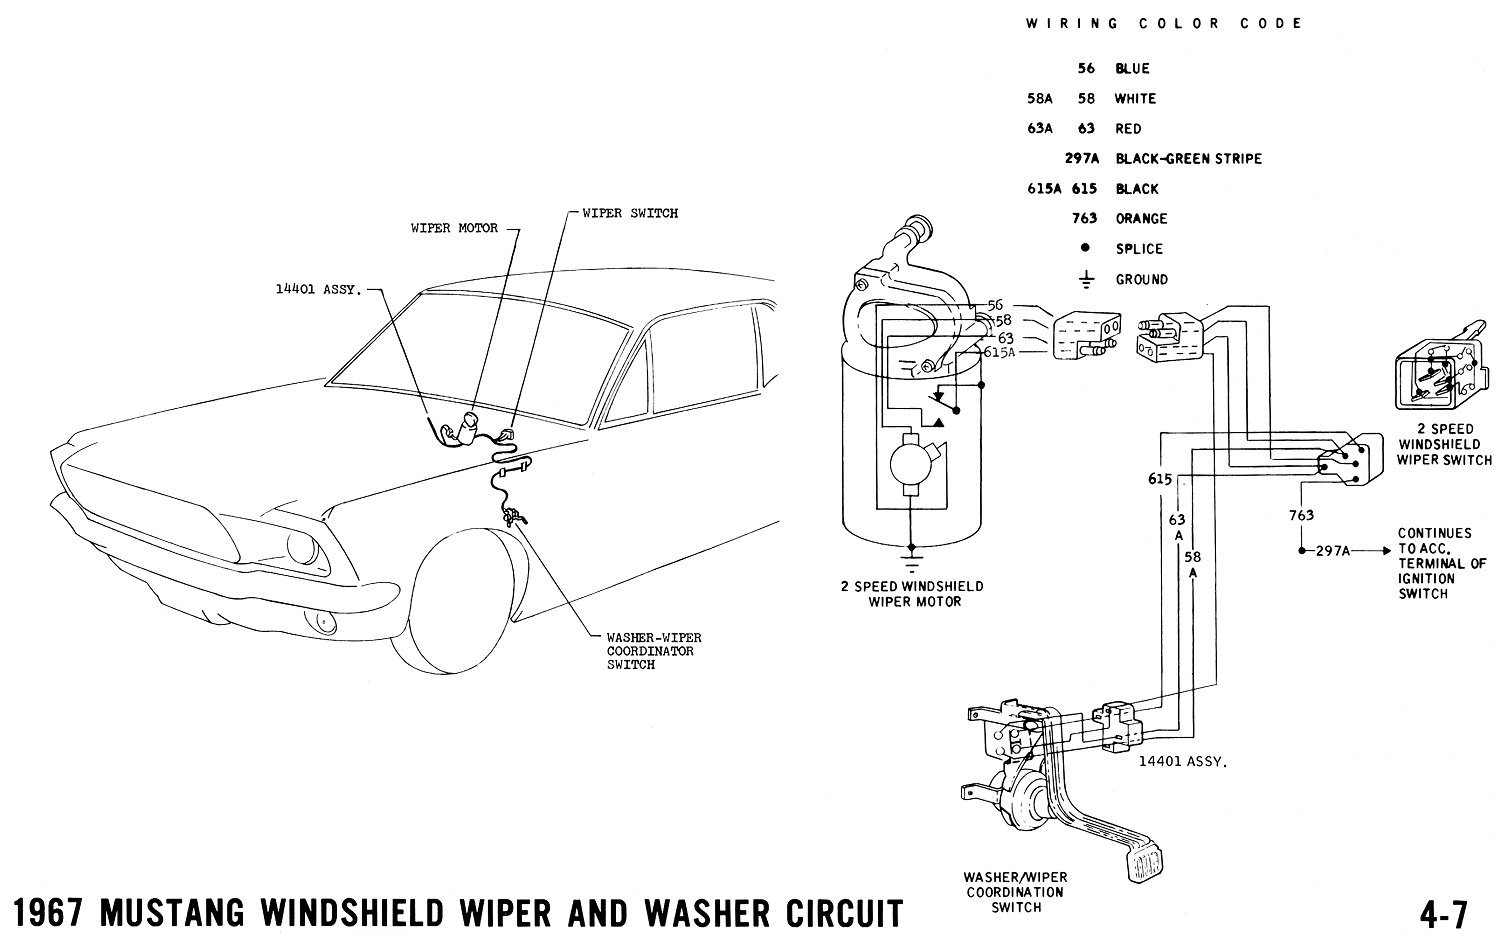 1967 mustang wiper motor replacement - ford mustang forum ford f150 wiper switch wiring diagram